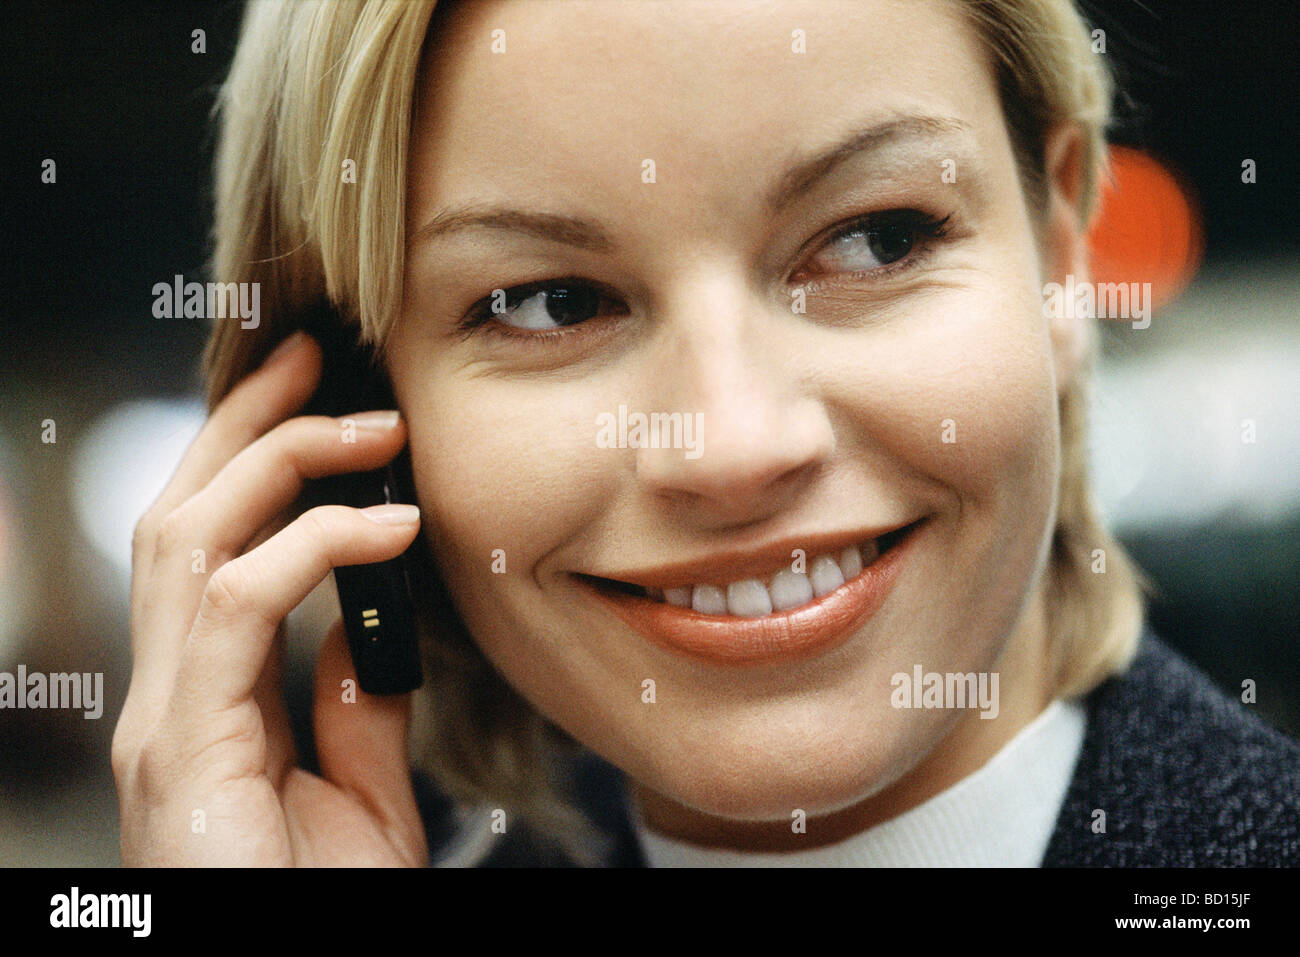 Woman phoning using cell phone smiling, glancing sideways, portrait - Stock Image